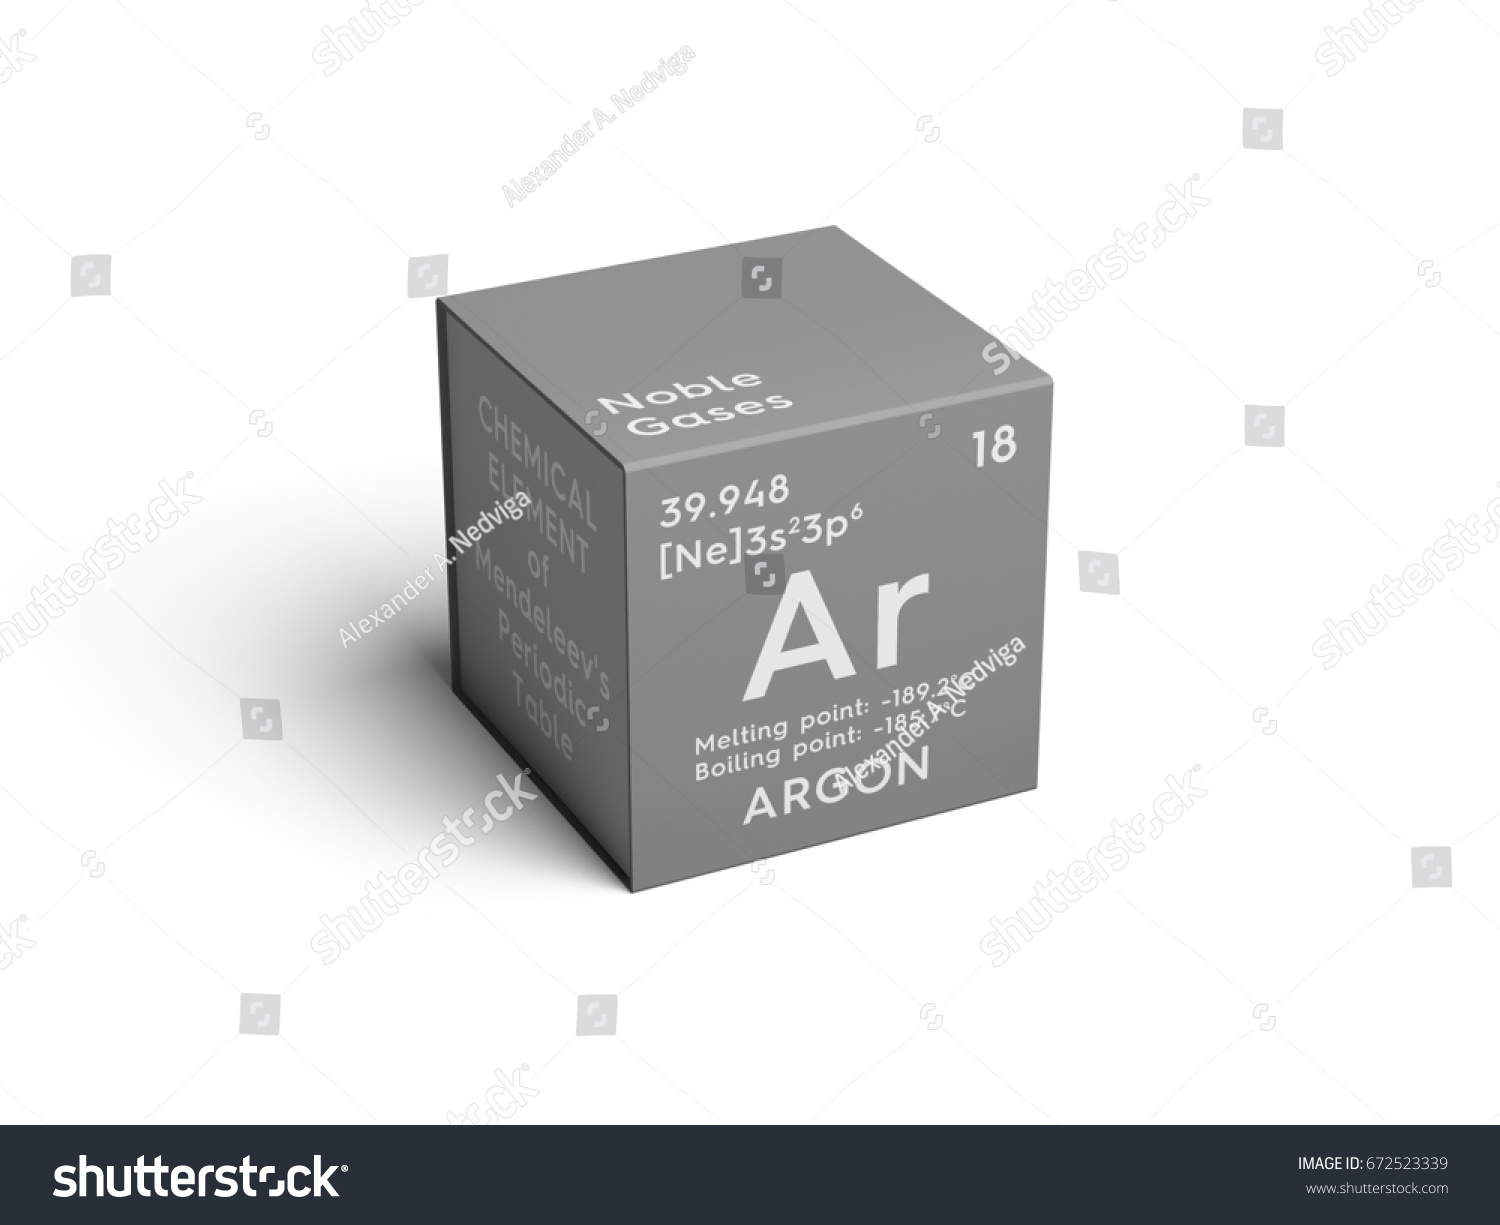 Argon noble gases chemical element mendeleevs stock illustration argon noble gases chemical element of mendeleevs periodic table argon in square cube gamestrikefo Choice Image